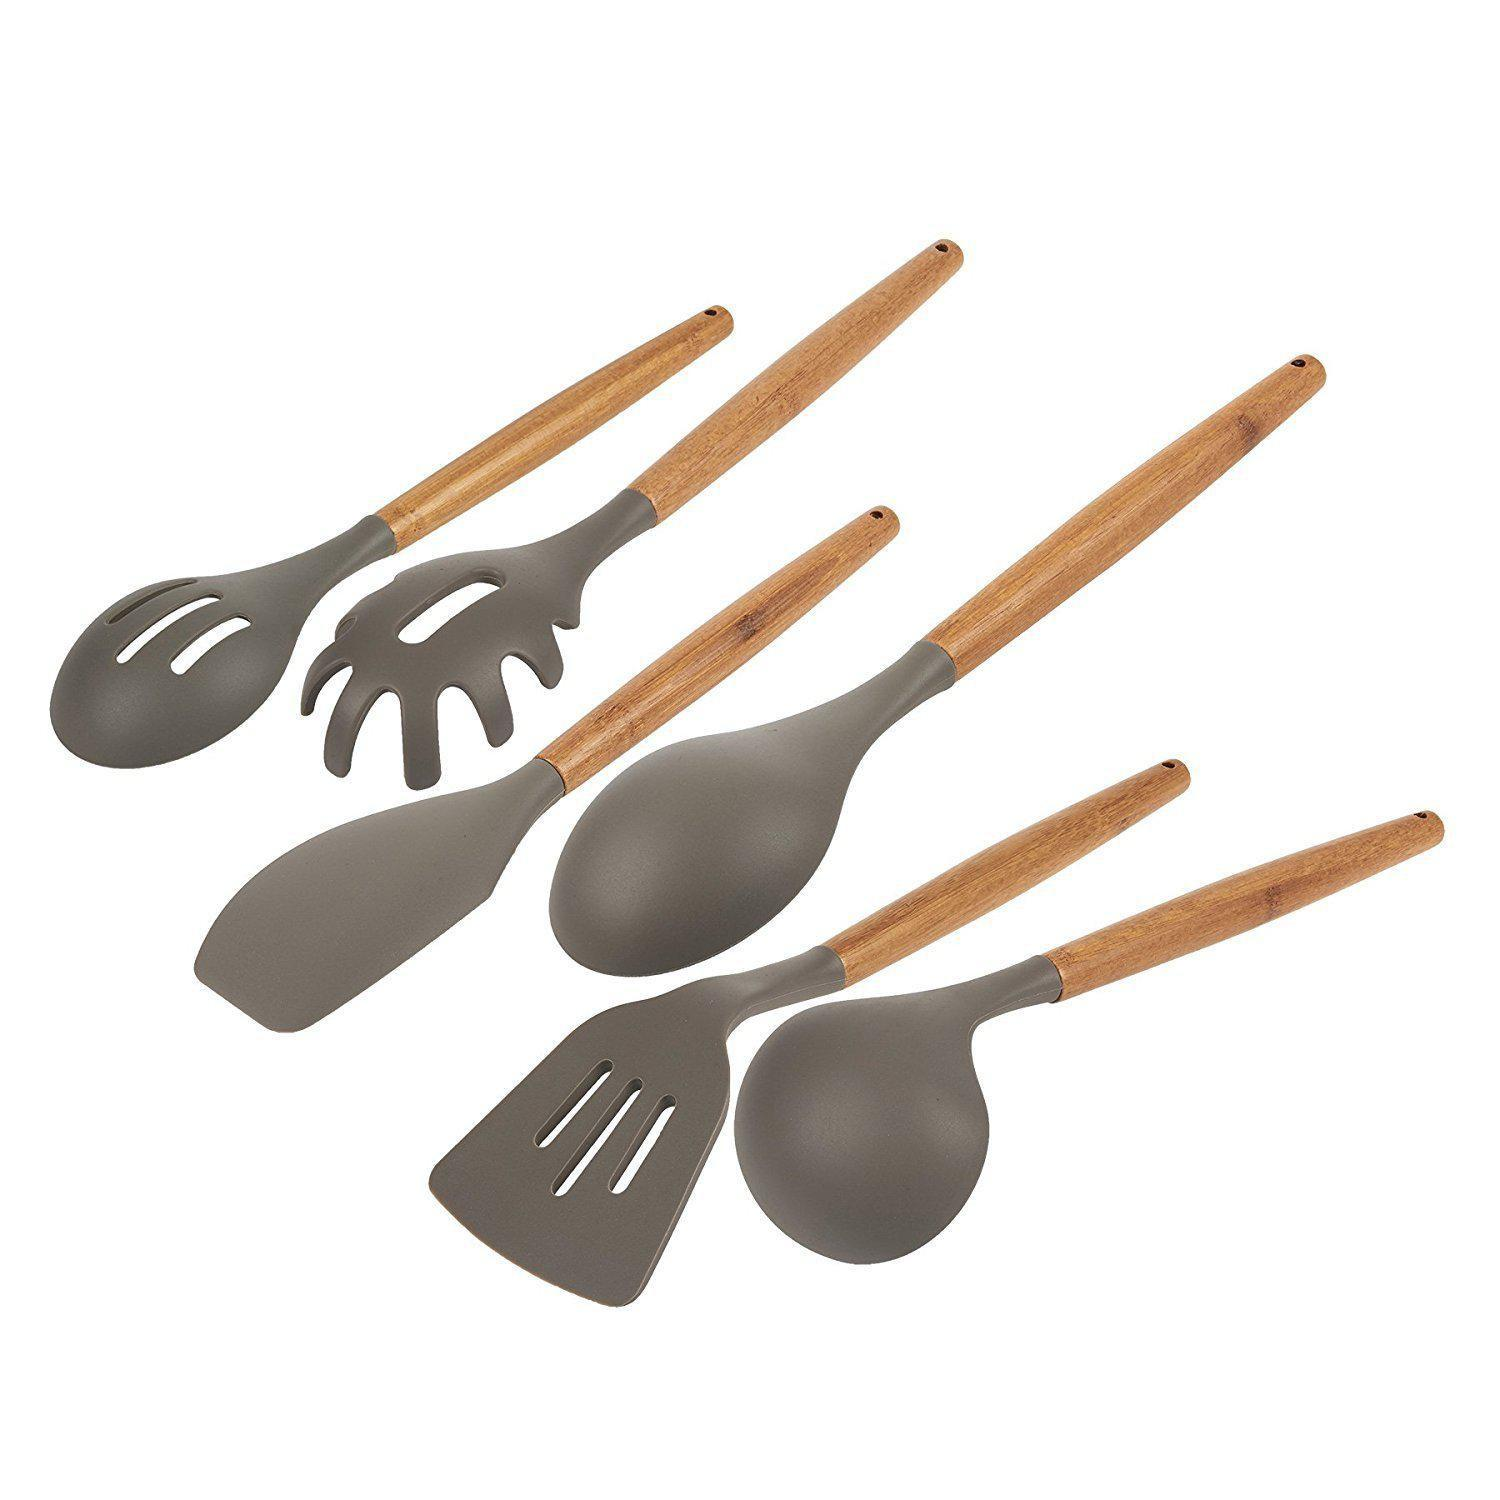 Gourmet Non Stick Silicone Cooking Tools Bamboo